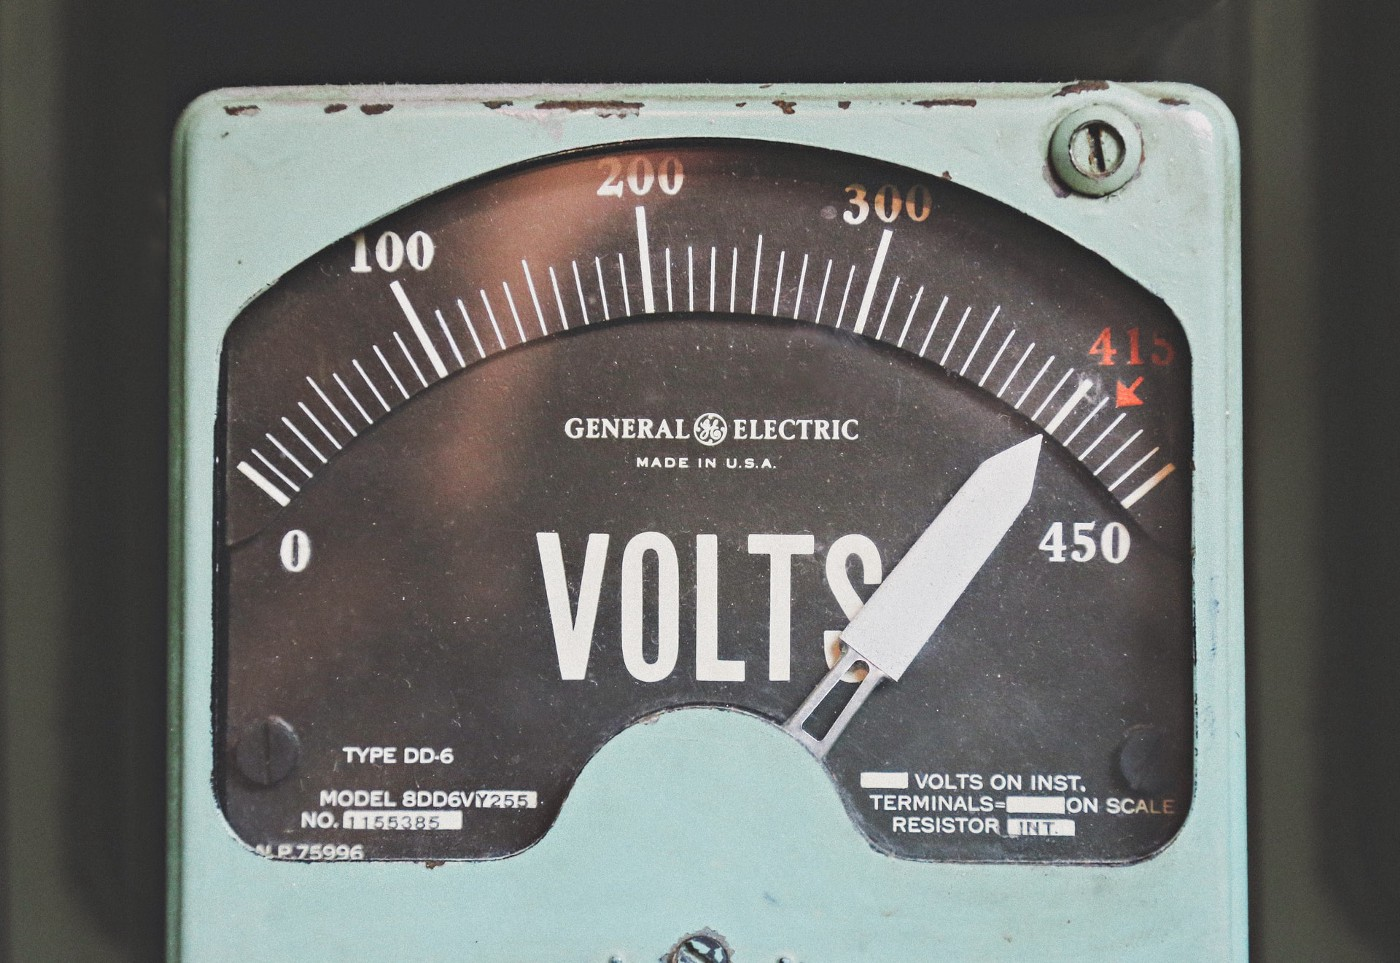 A device to measure voltage.